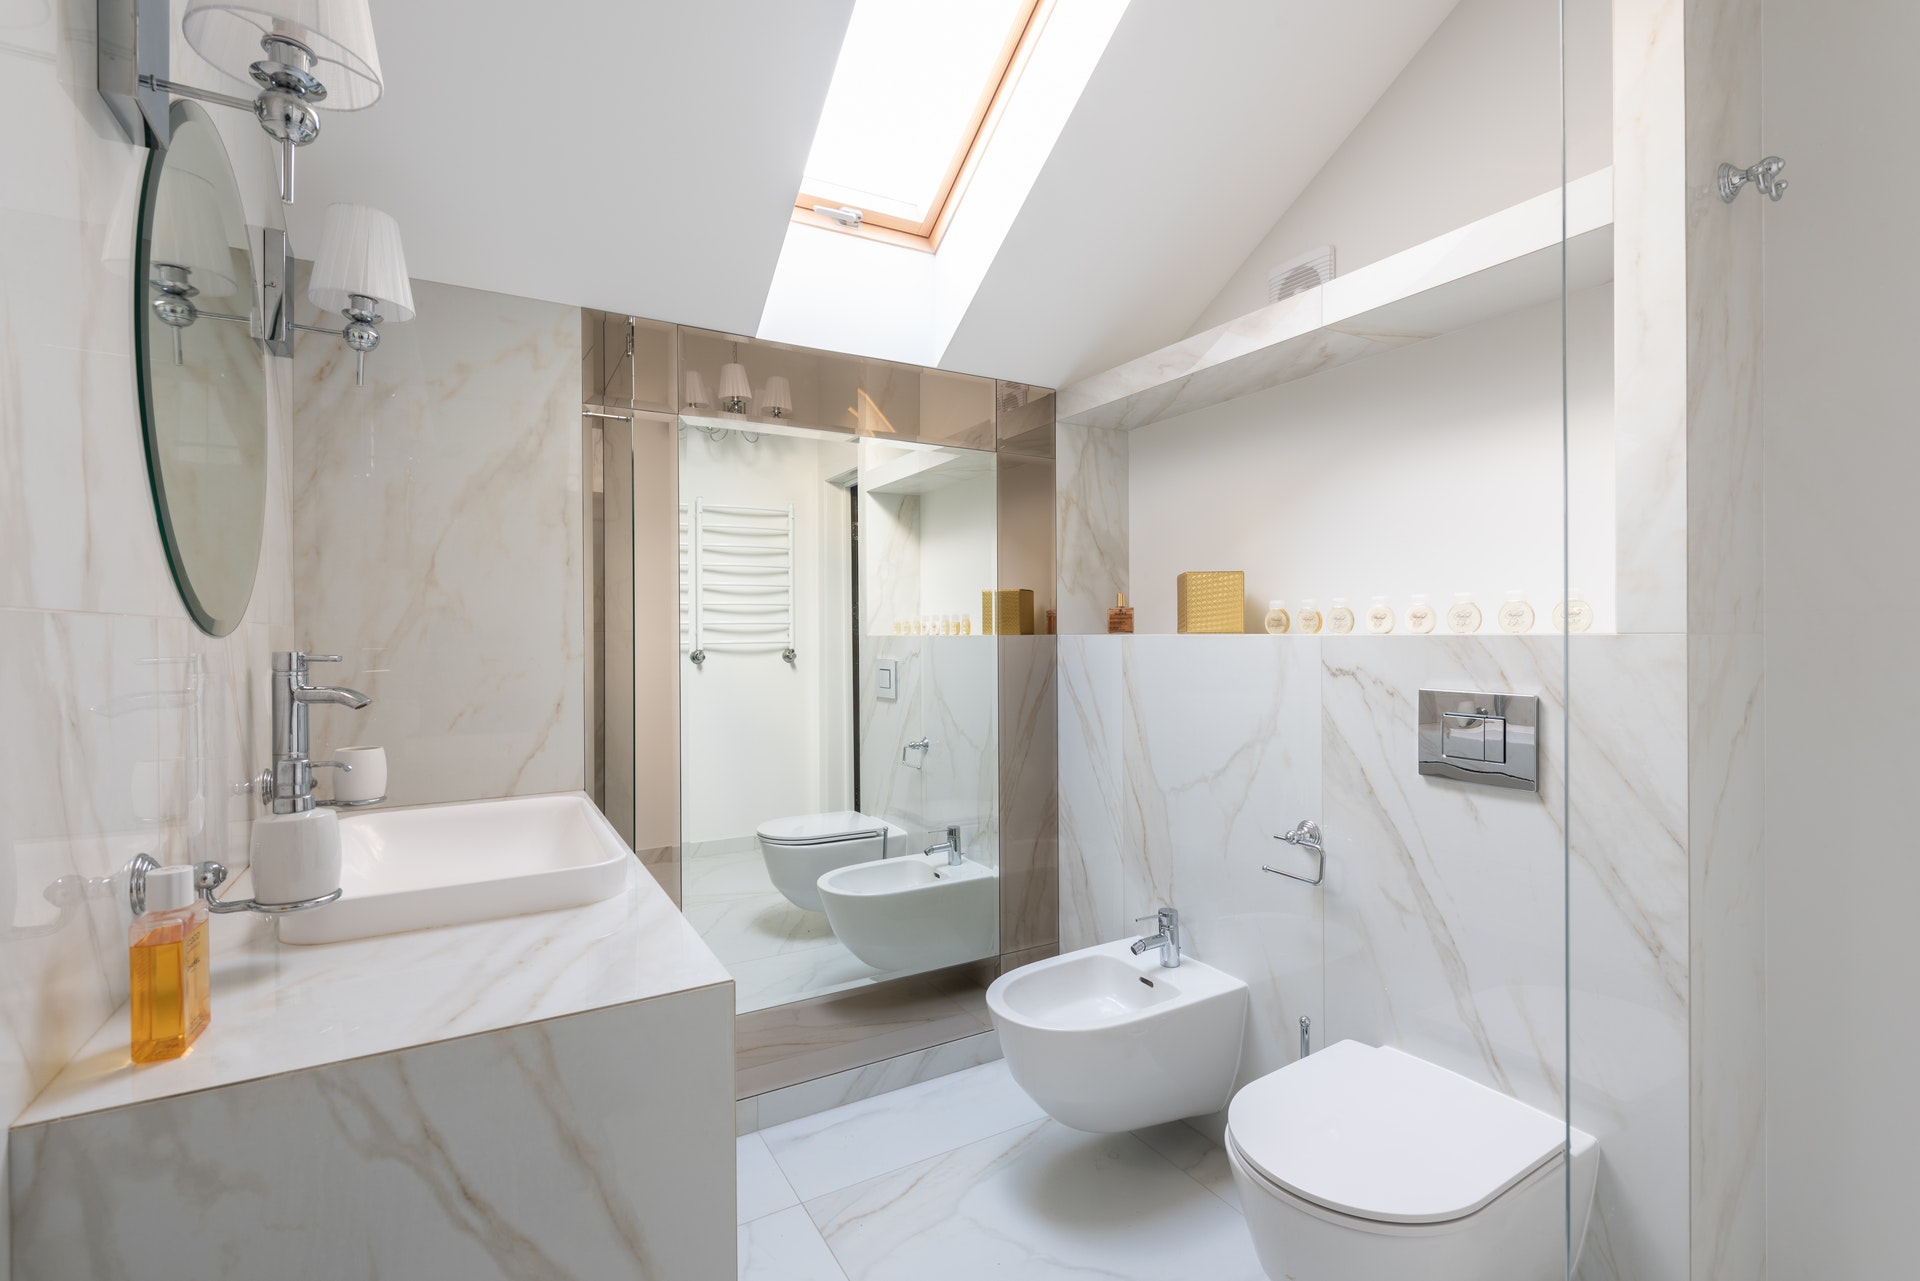 Top Tips For Creating a Modern Bathroom